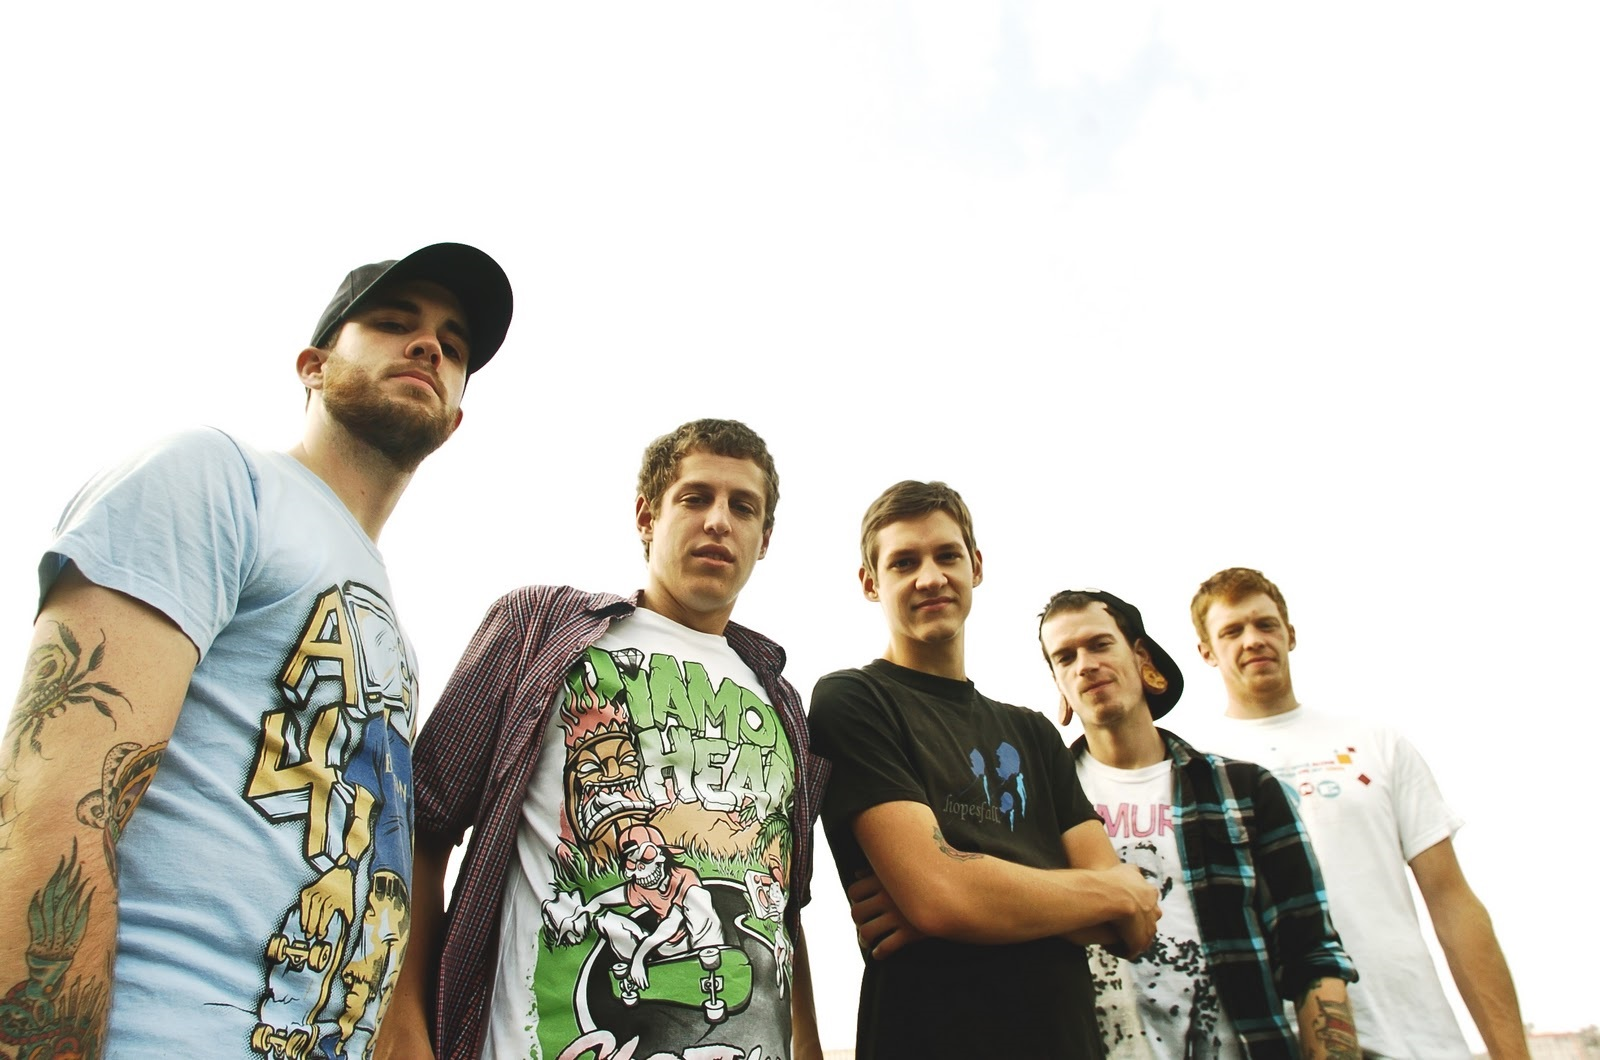 Such Gold is a melodic hardcore/punk band from Rochester, New York. Such  Gold formed officially in 2009, and self-released